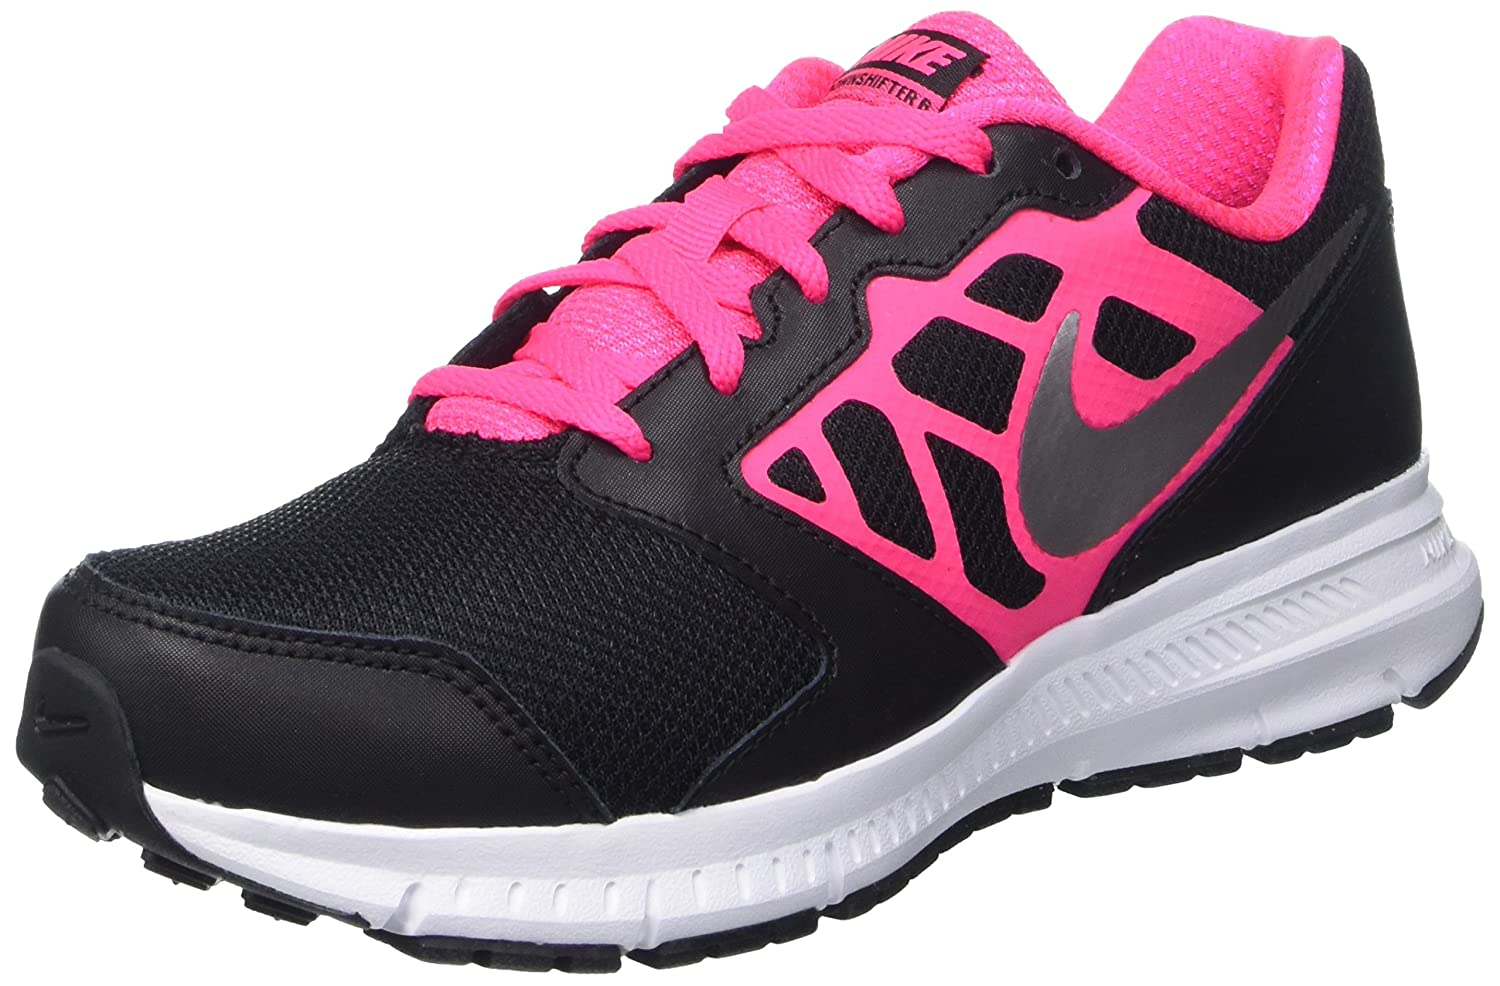 NIKE ' Downshifter 6 (GS/PS) Running Shoes B00IO7ODFO 13 M US Little Kid|Black/Hyper Pink/White/Metallic Silver